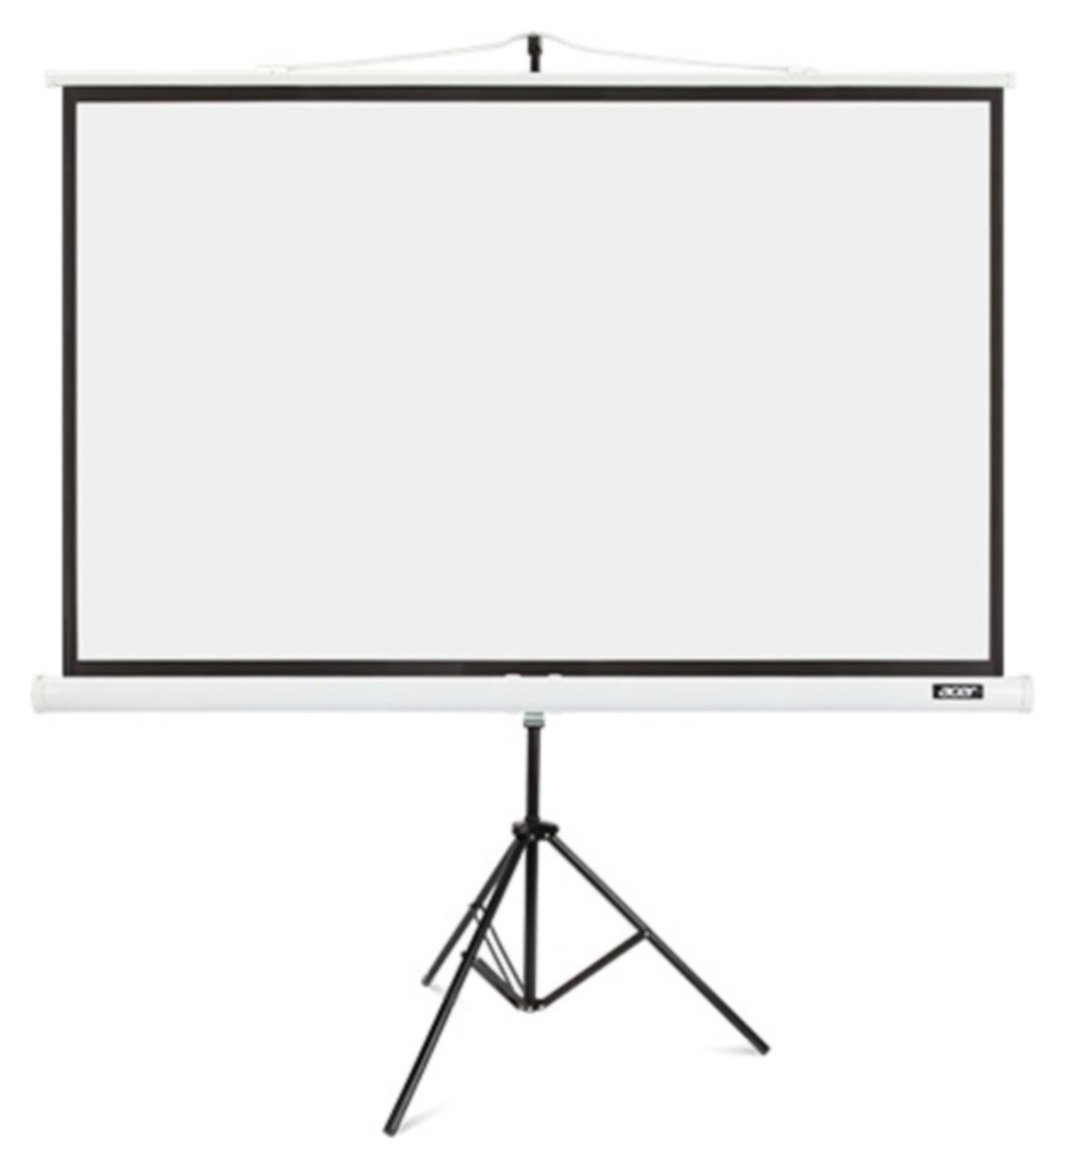 Acer 82.5 Inch Tripod Projection Screen